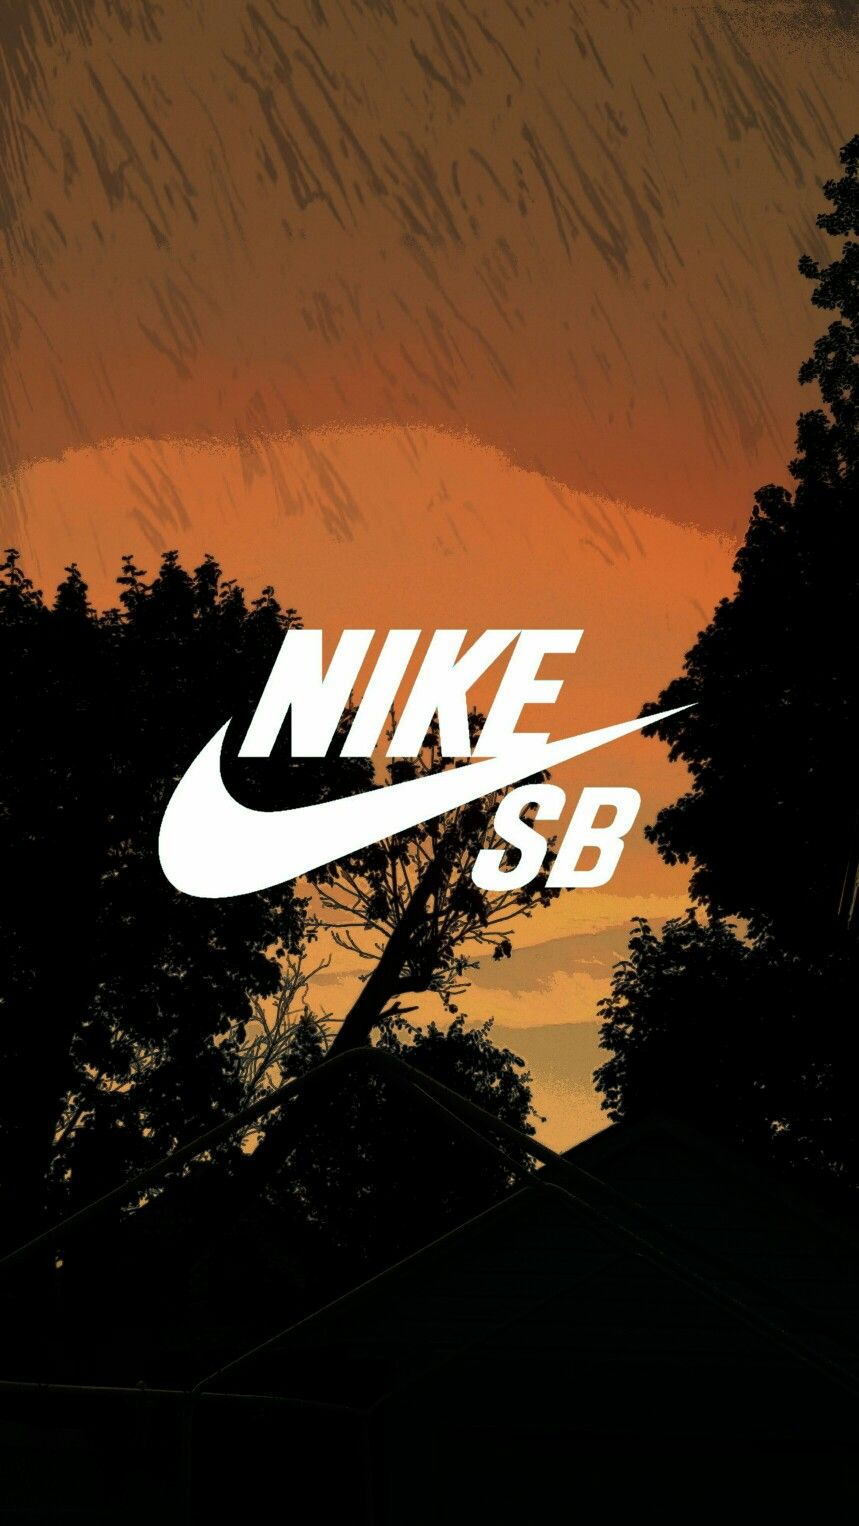 Pin By Drippy Penz On Nike Wallpapers Nike Wallpaper Nike Wallpaper Awesome nike sb logo wallpaper hd images